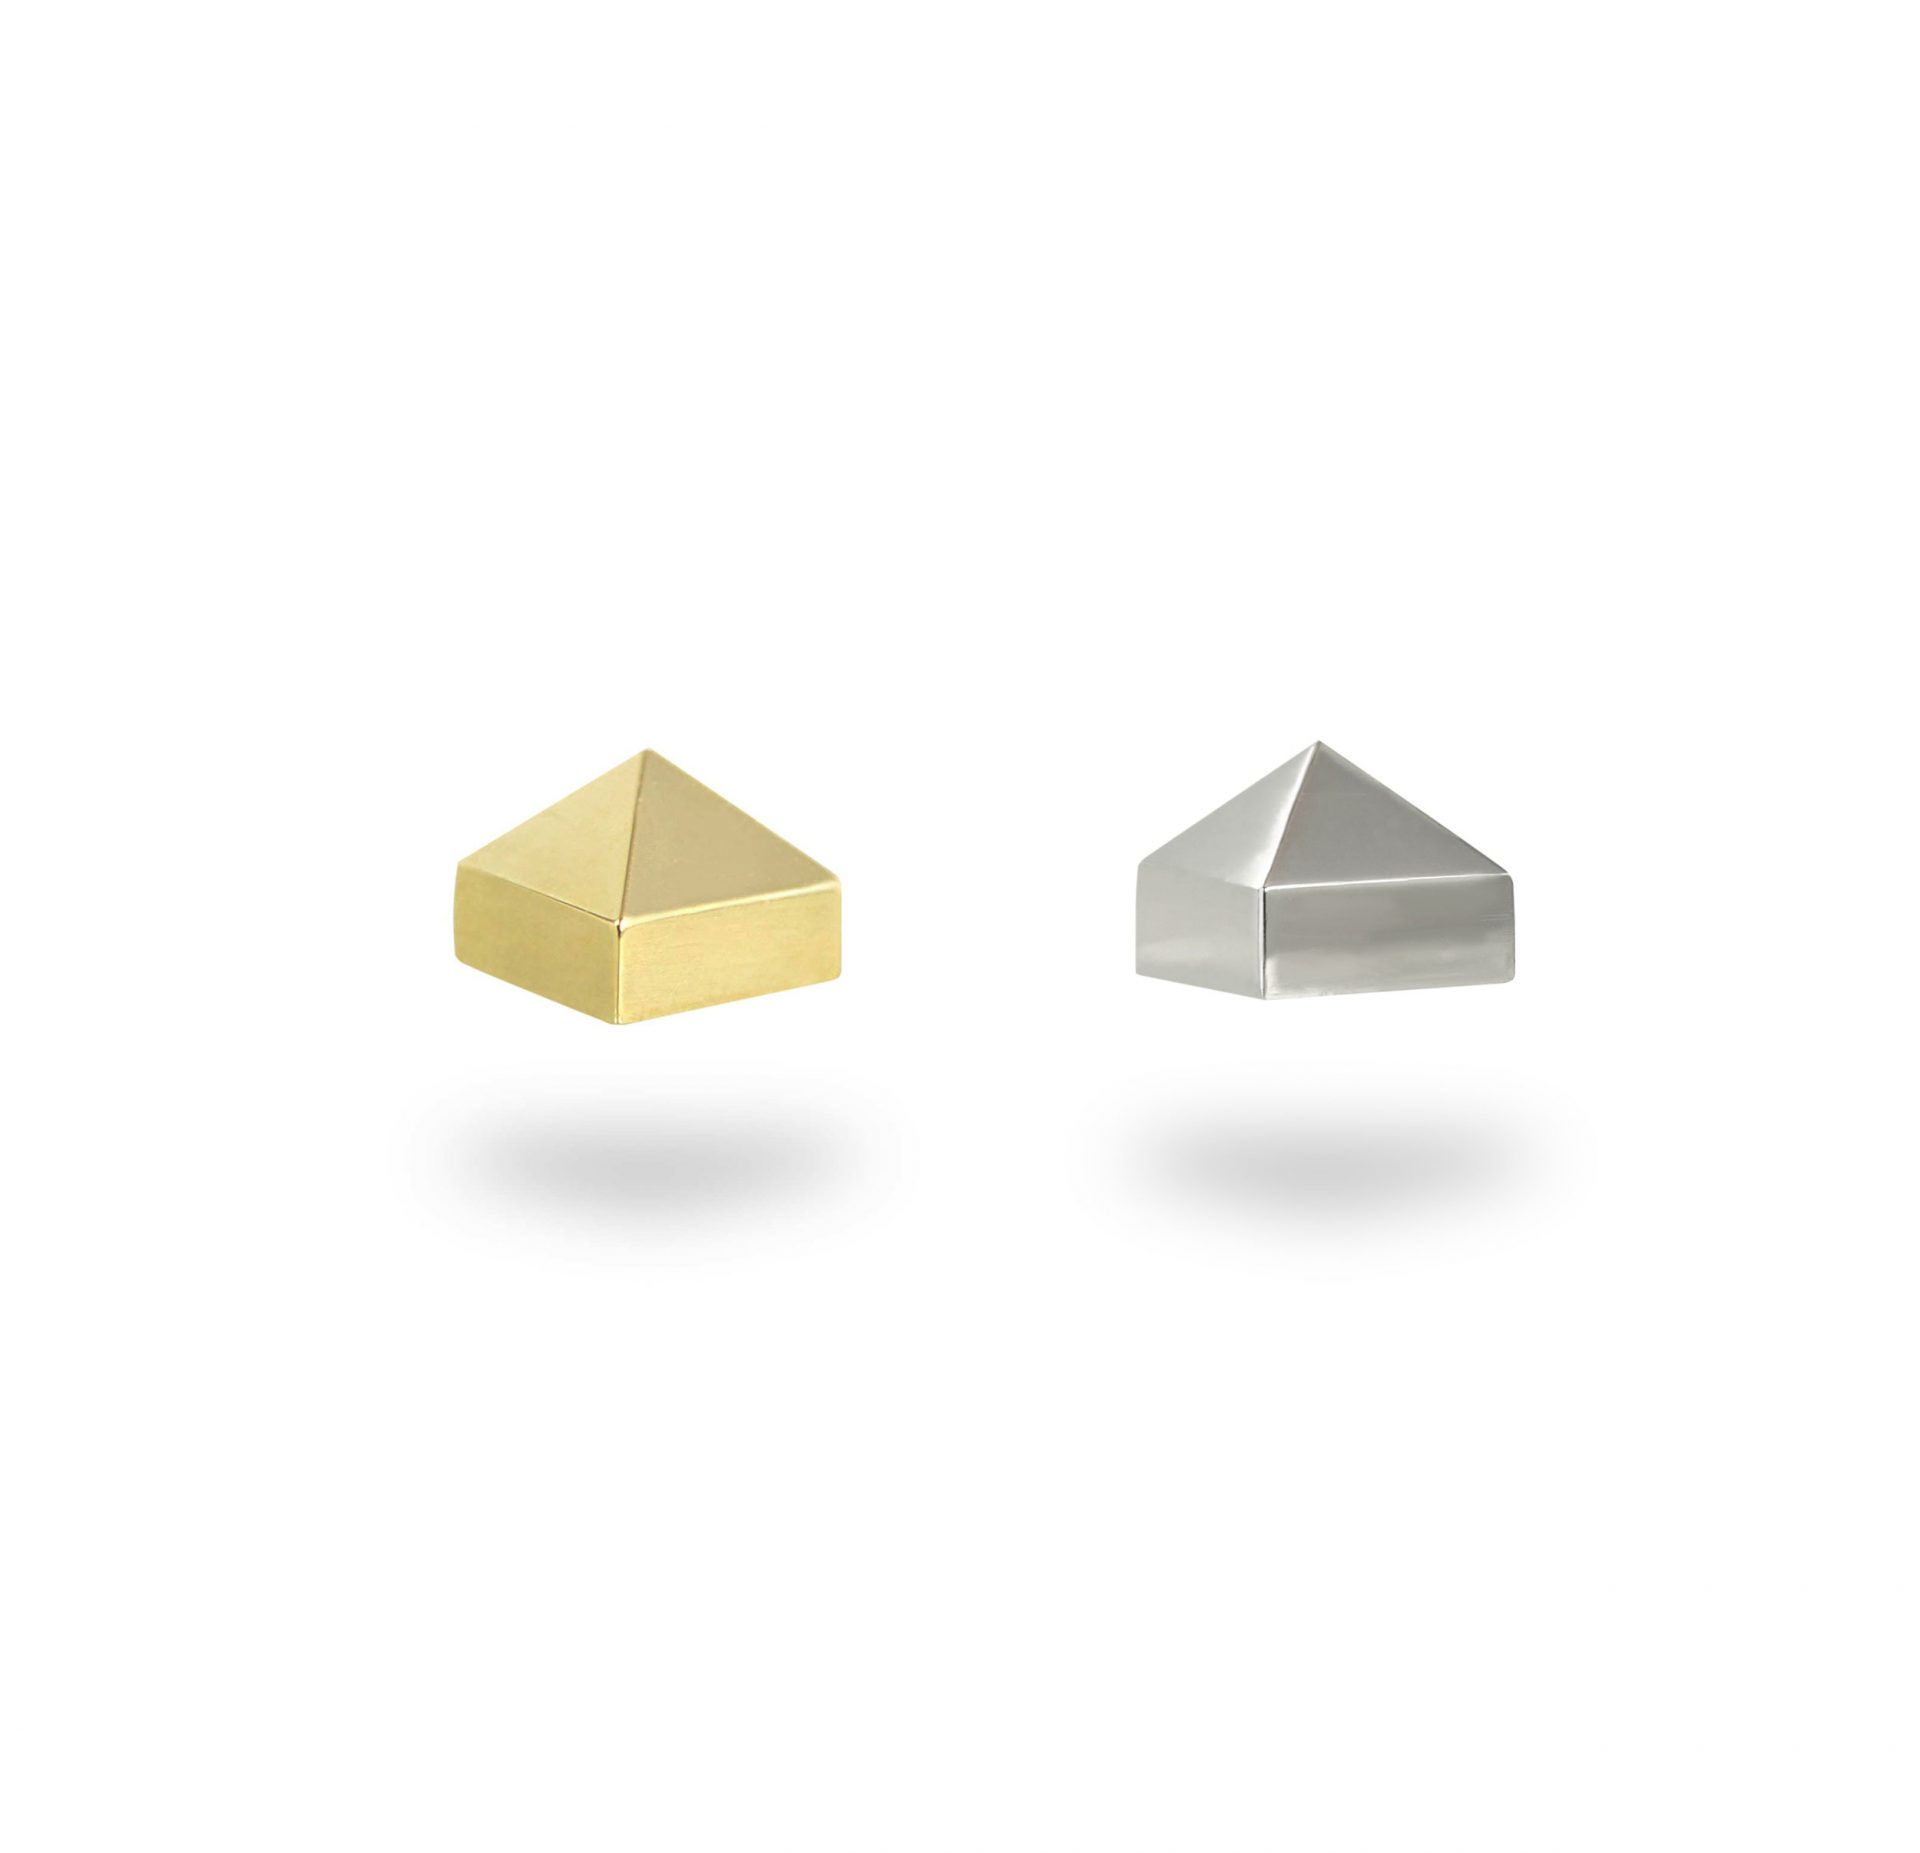 pyramid-screw-back-solid-18k-yellow-white-gold-bevelled-edge-lena-cohen-london-luxury-piercings